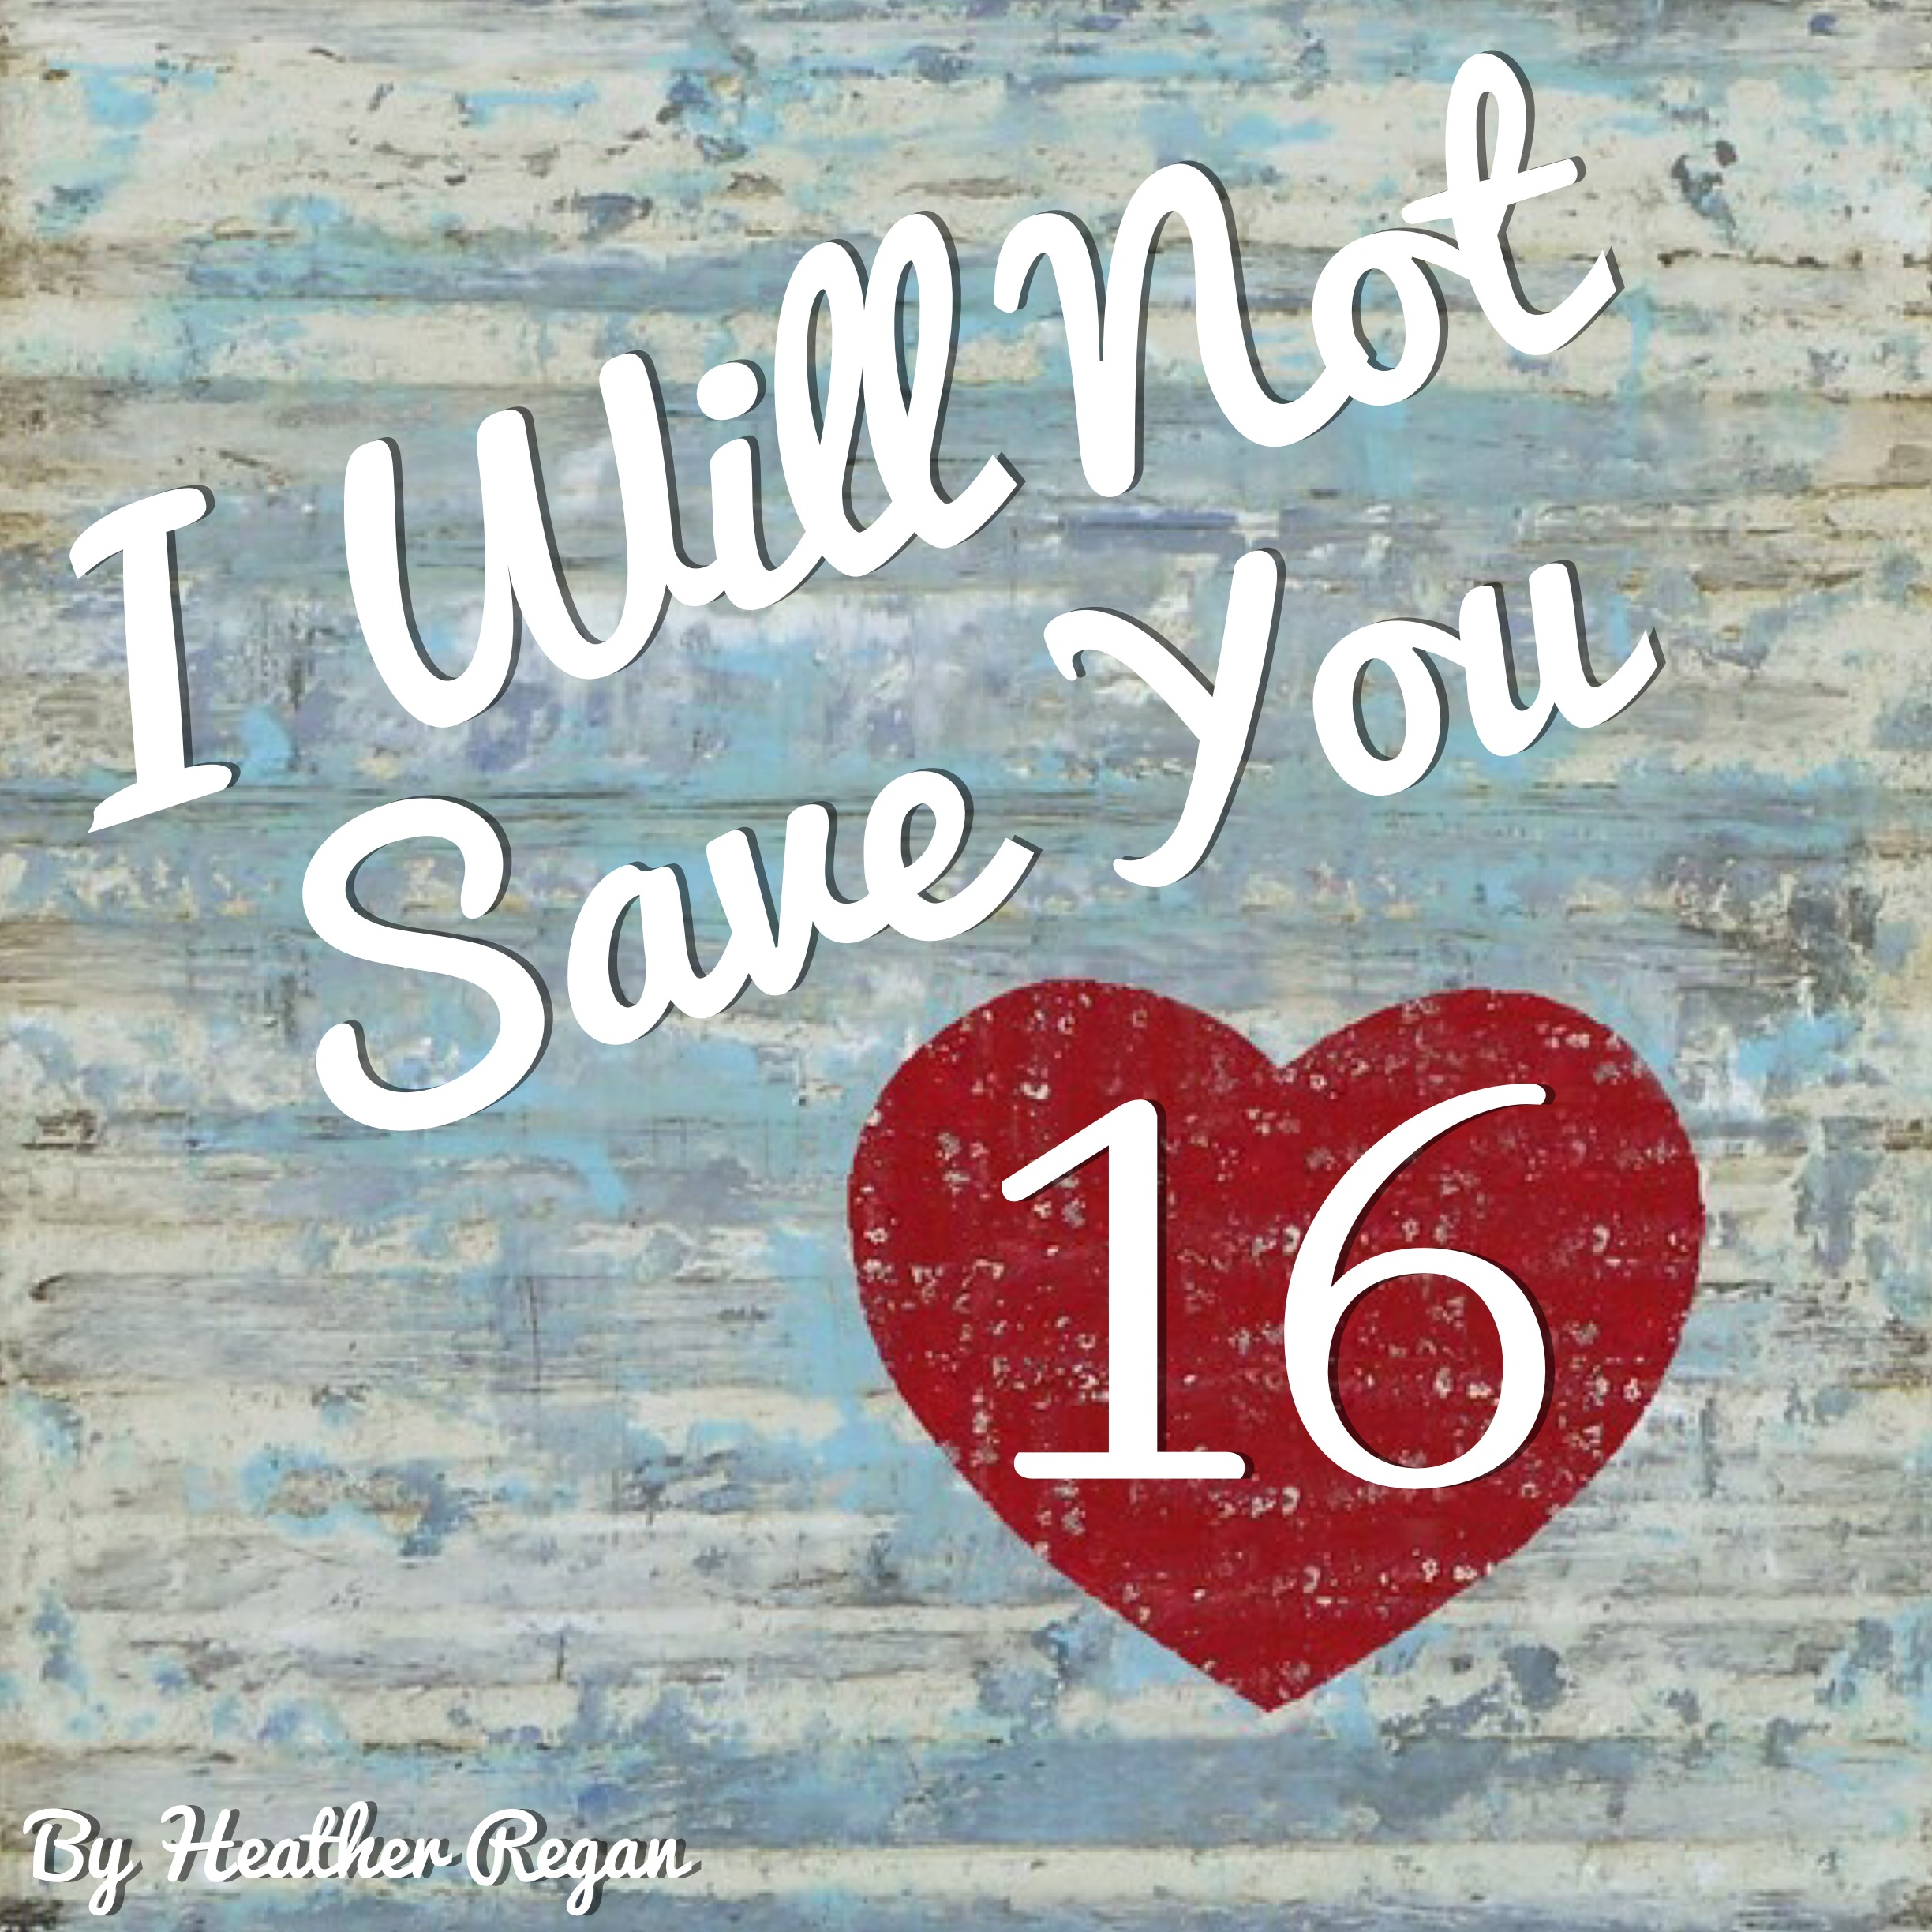 16, I Will Not Save You